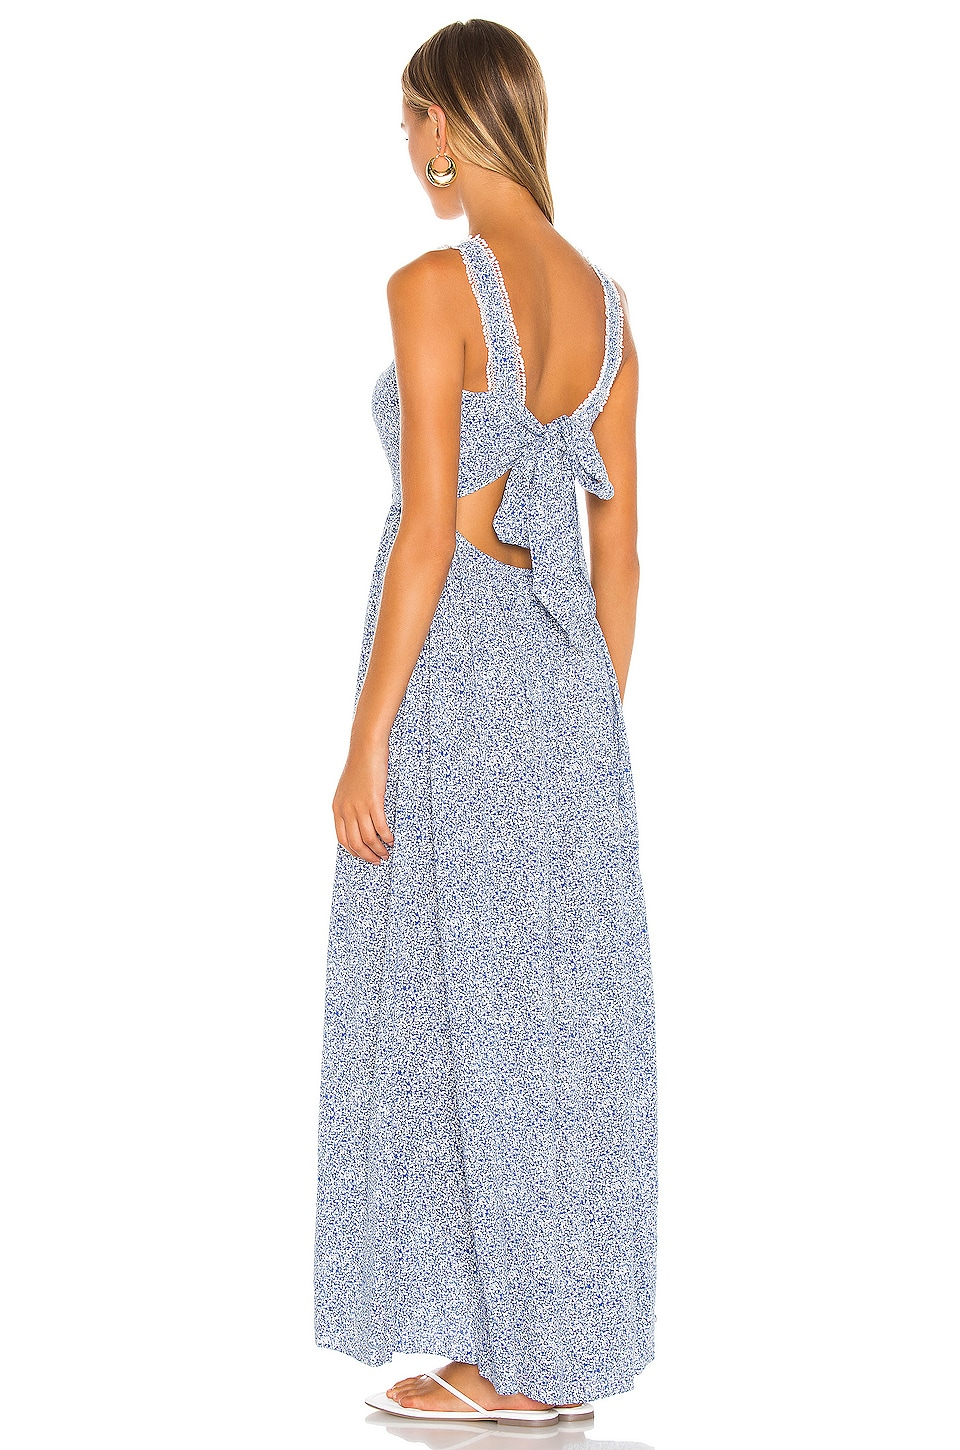 Tie Back Vintage Ditsy Maxi Dress, view 4, click to view large image.